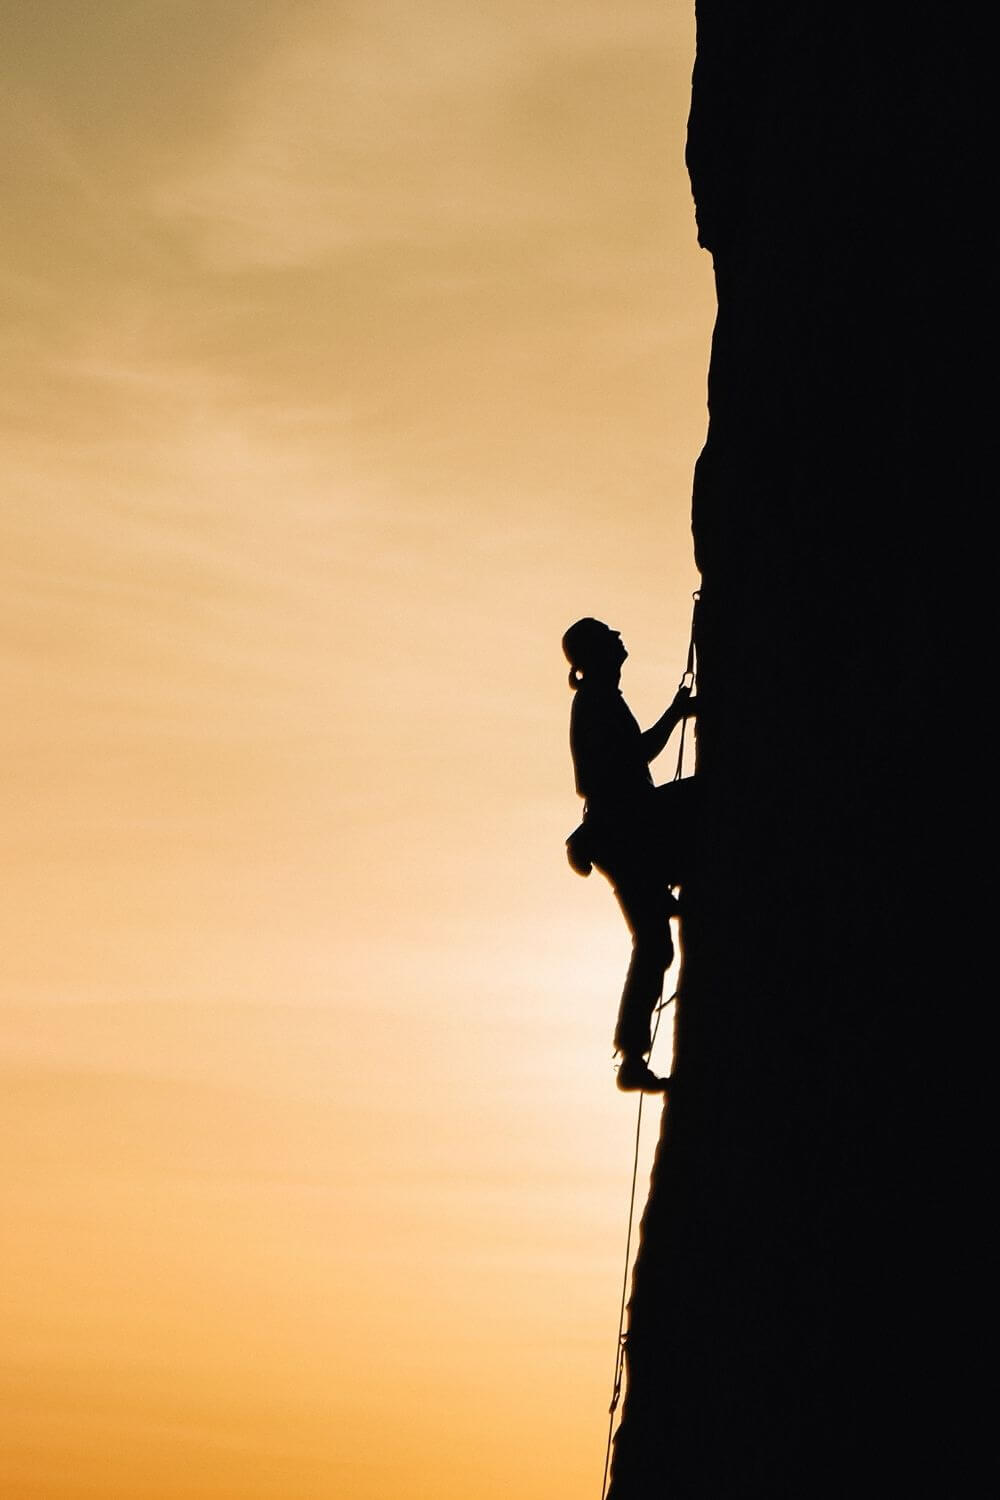 silhouette of a person climbing a mountain with orange sunset background